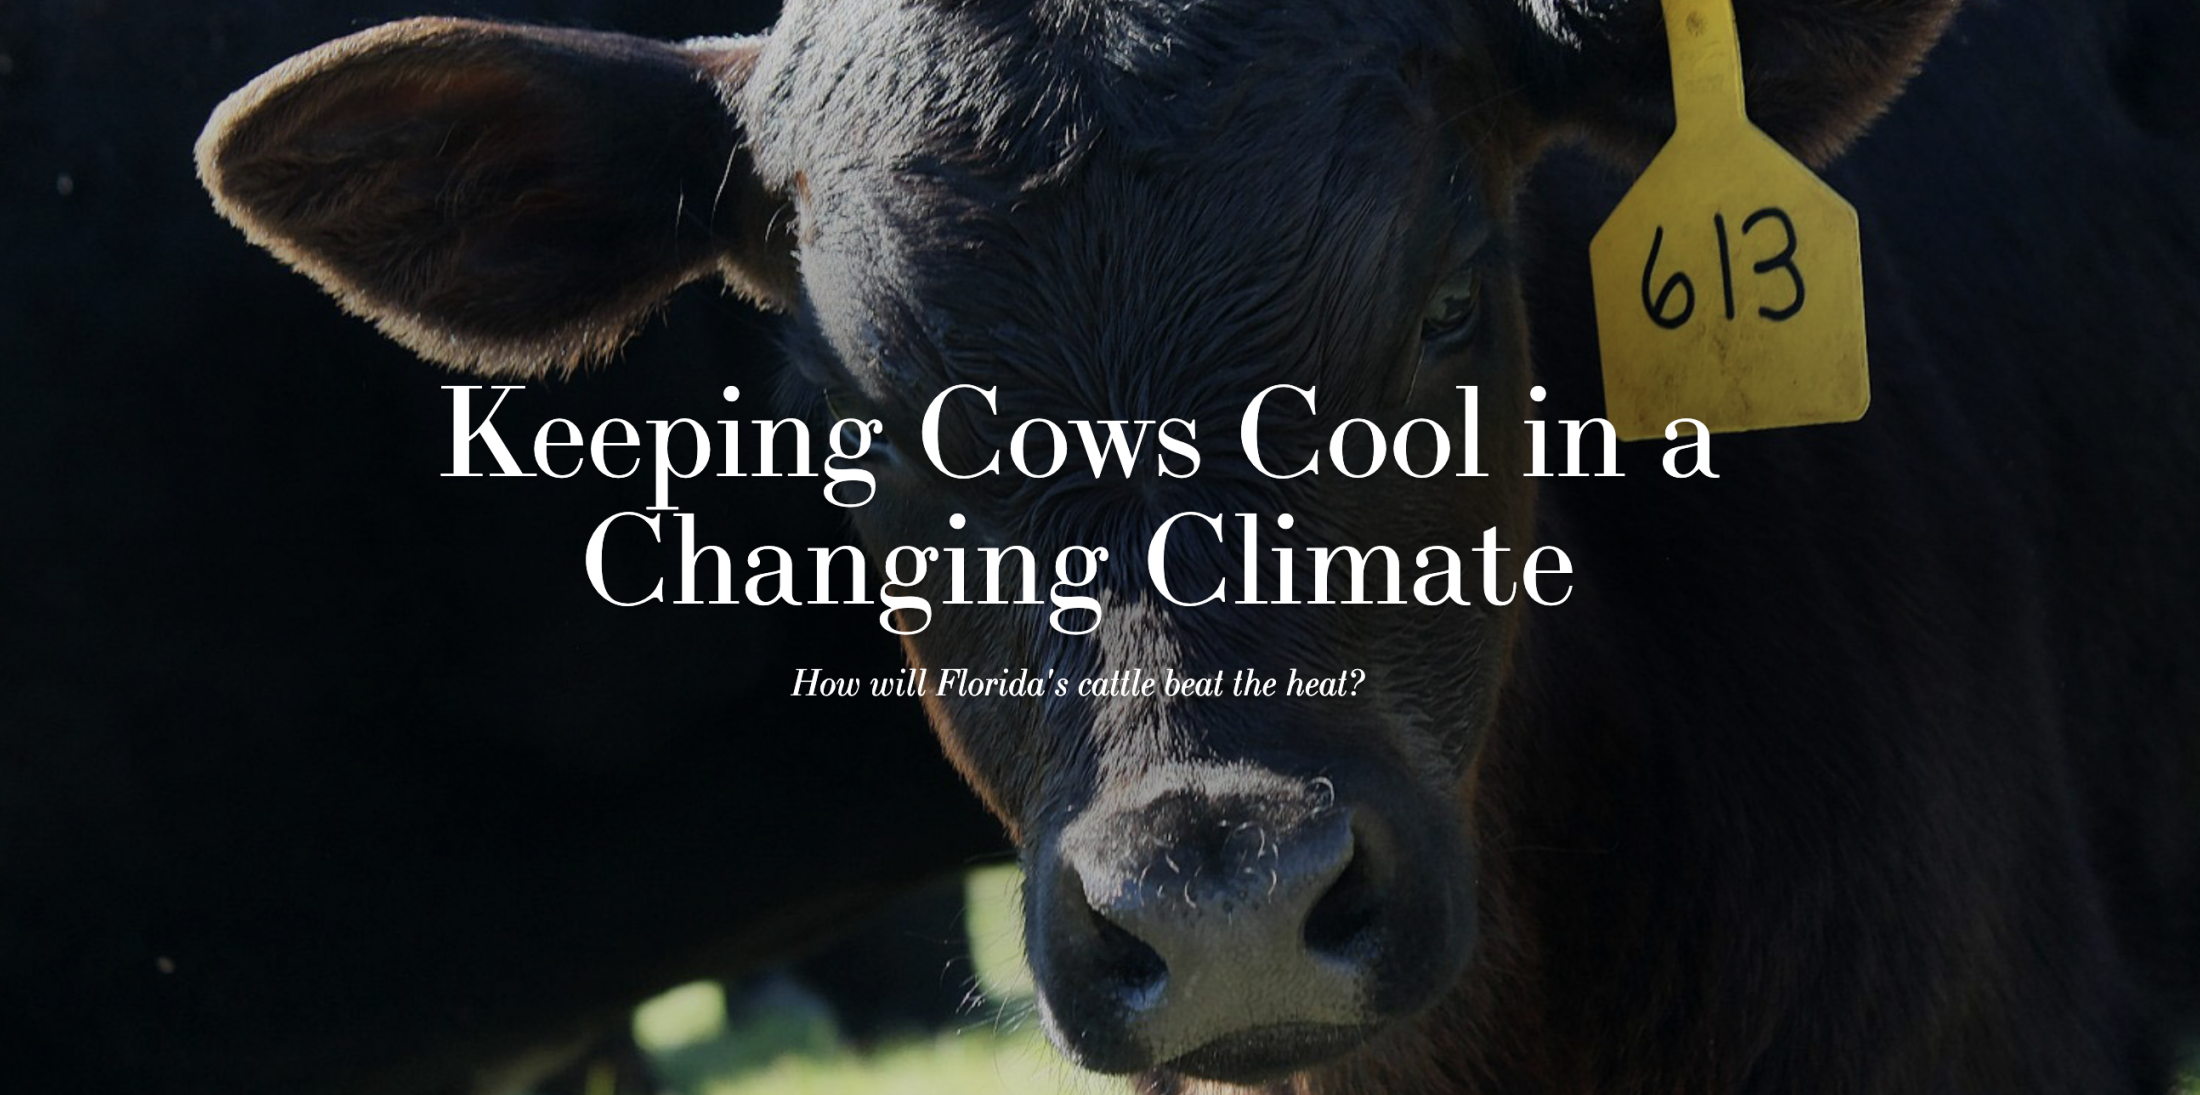 Keeping Cows Cool in a Changing Climate